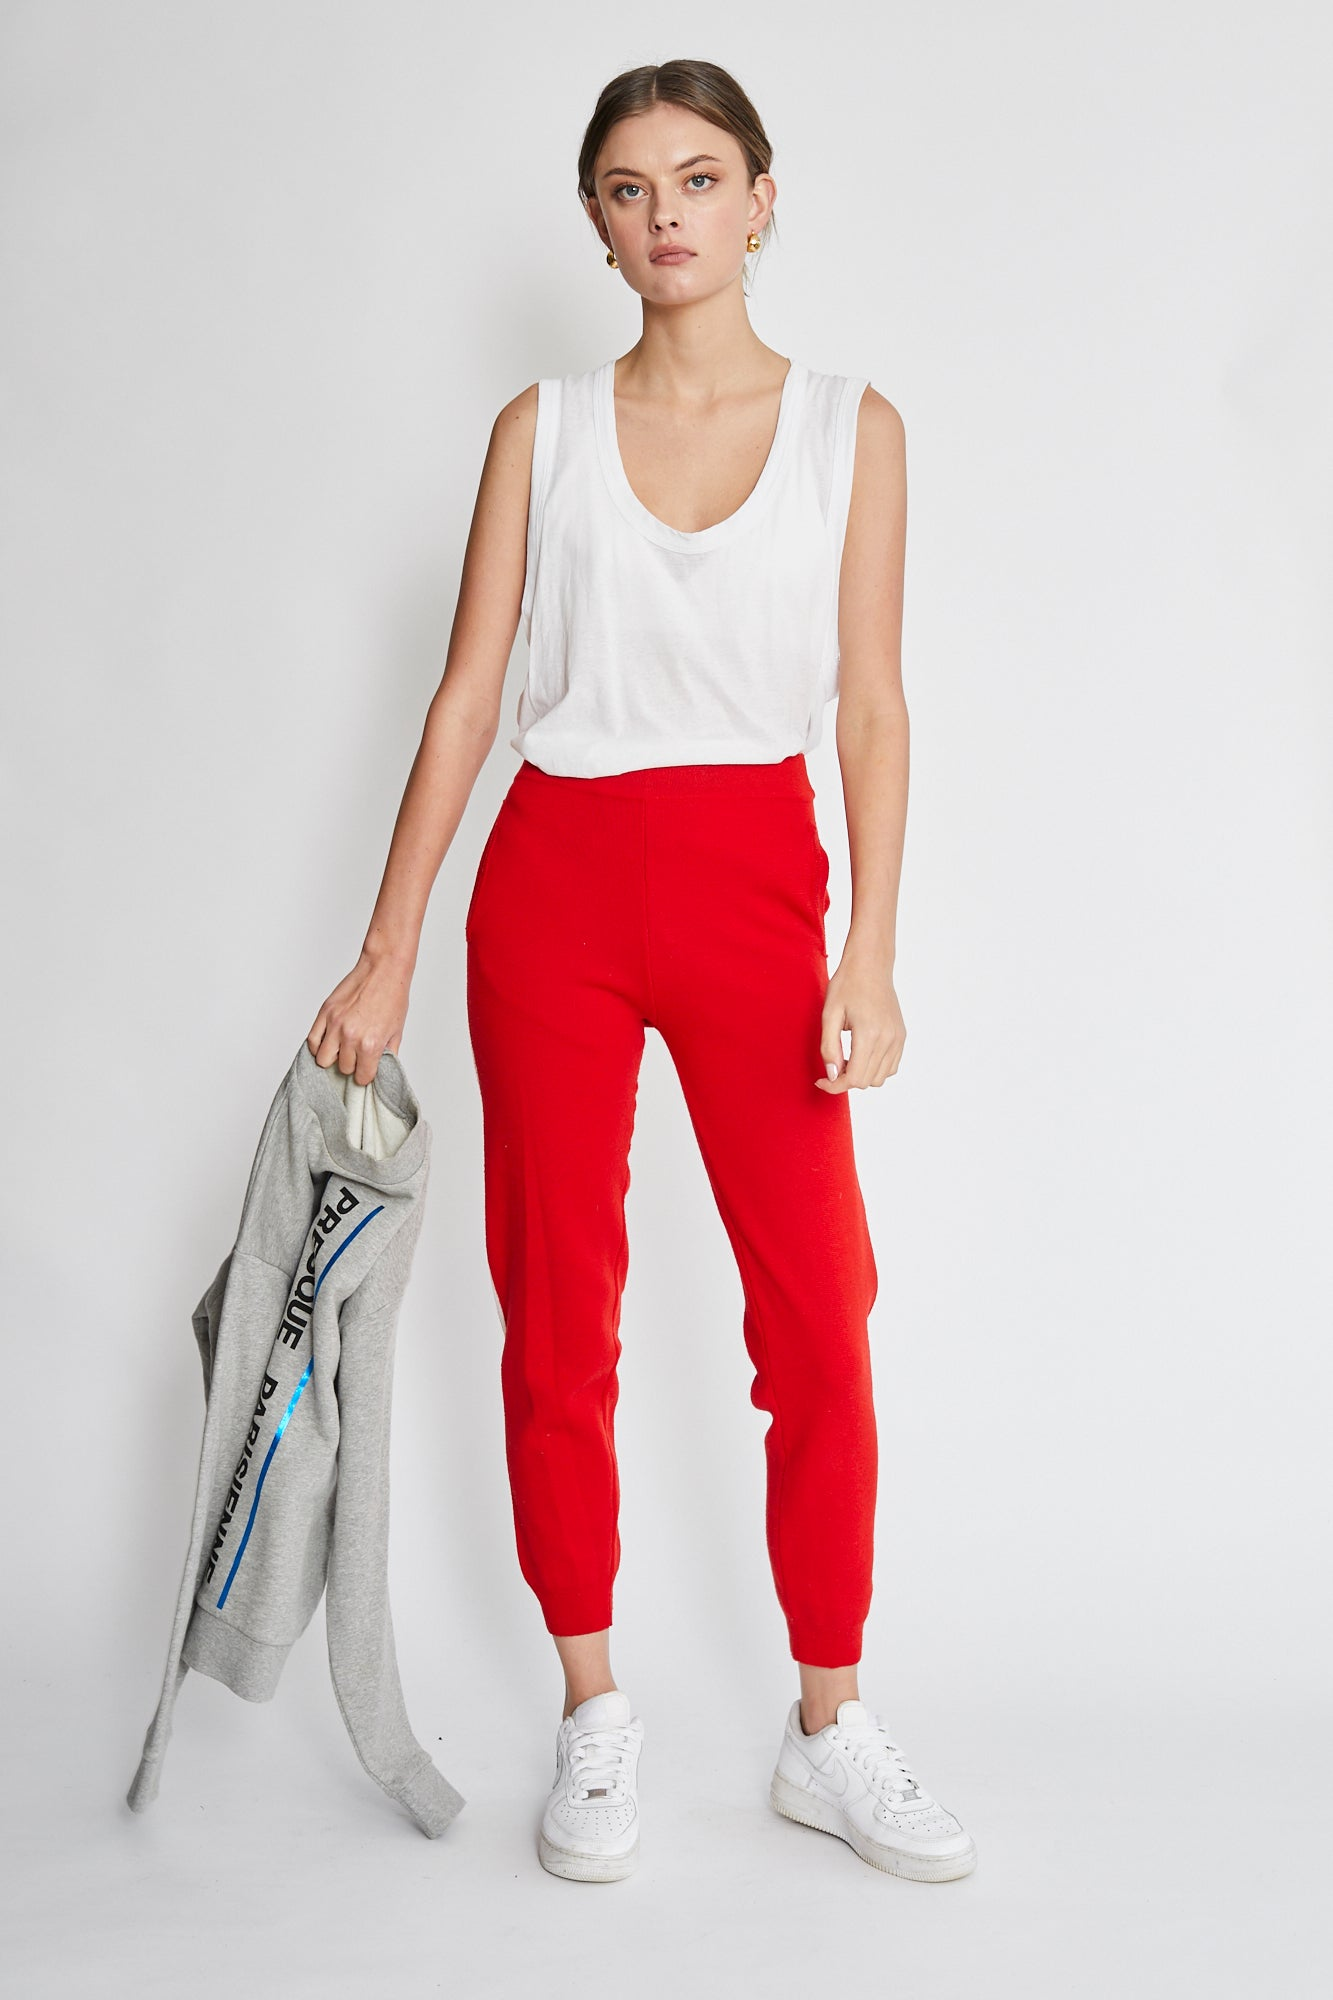 Plys knit trouser